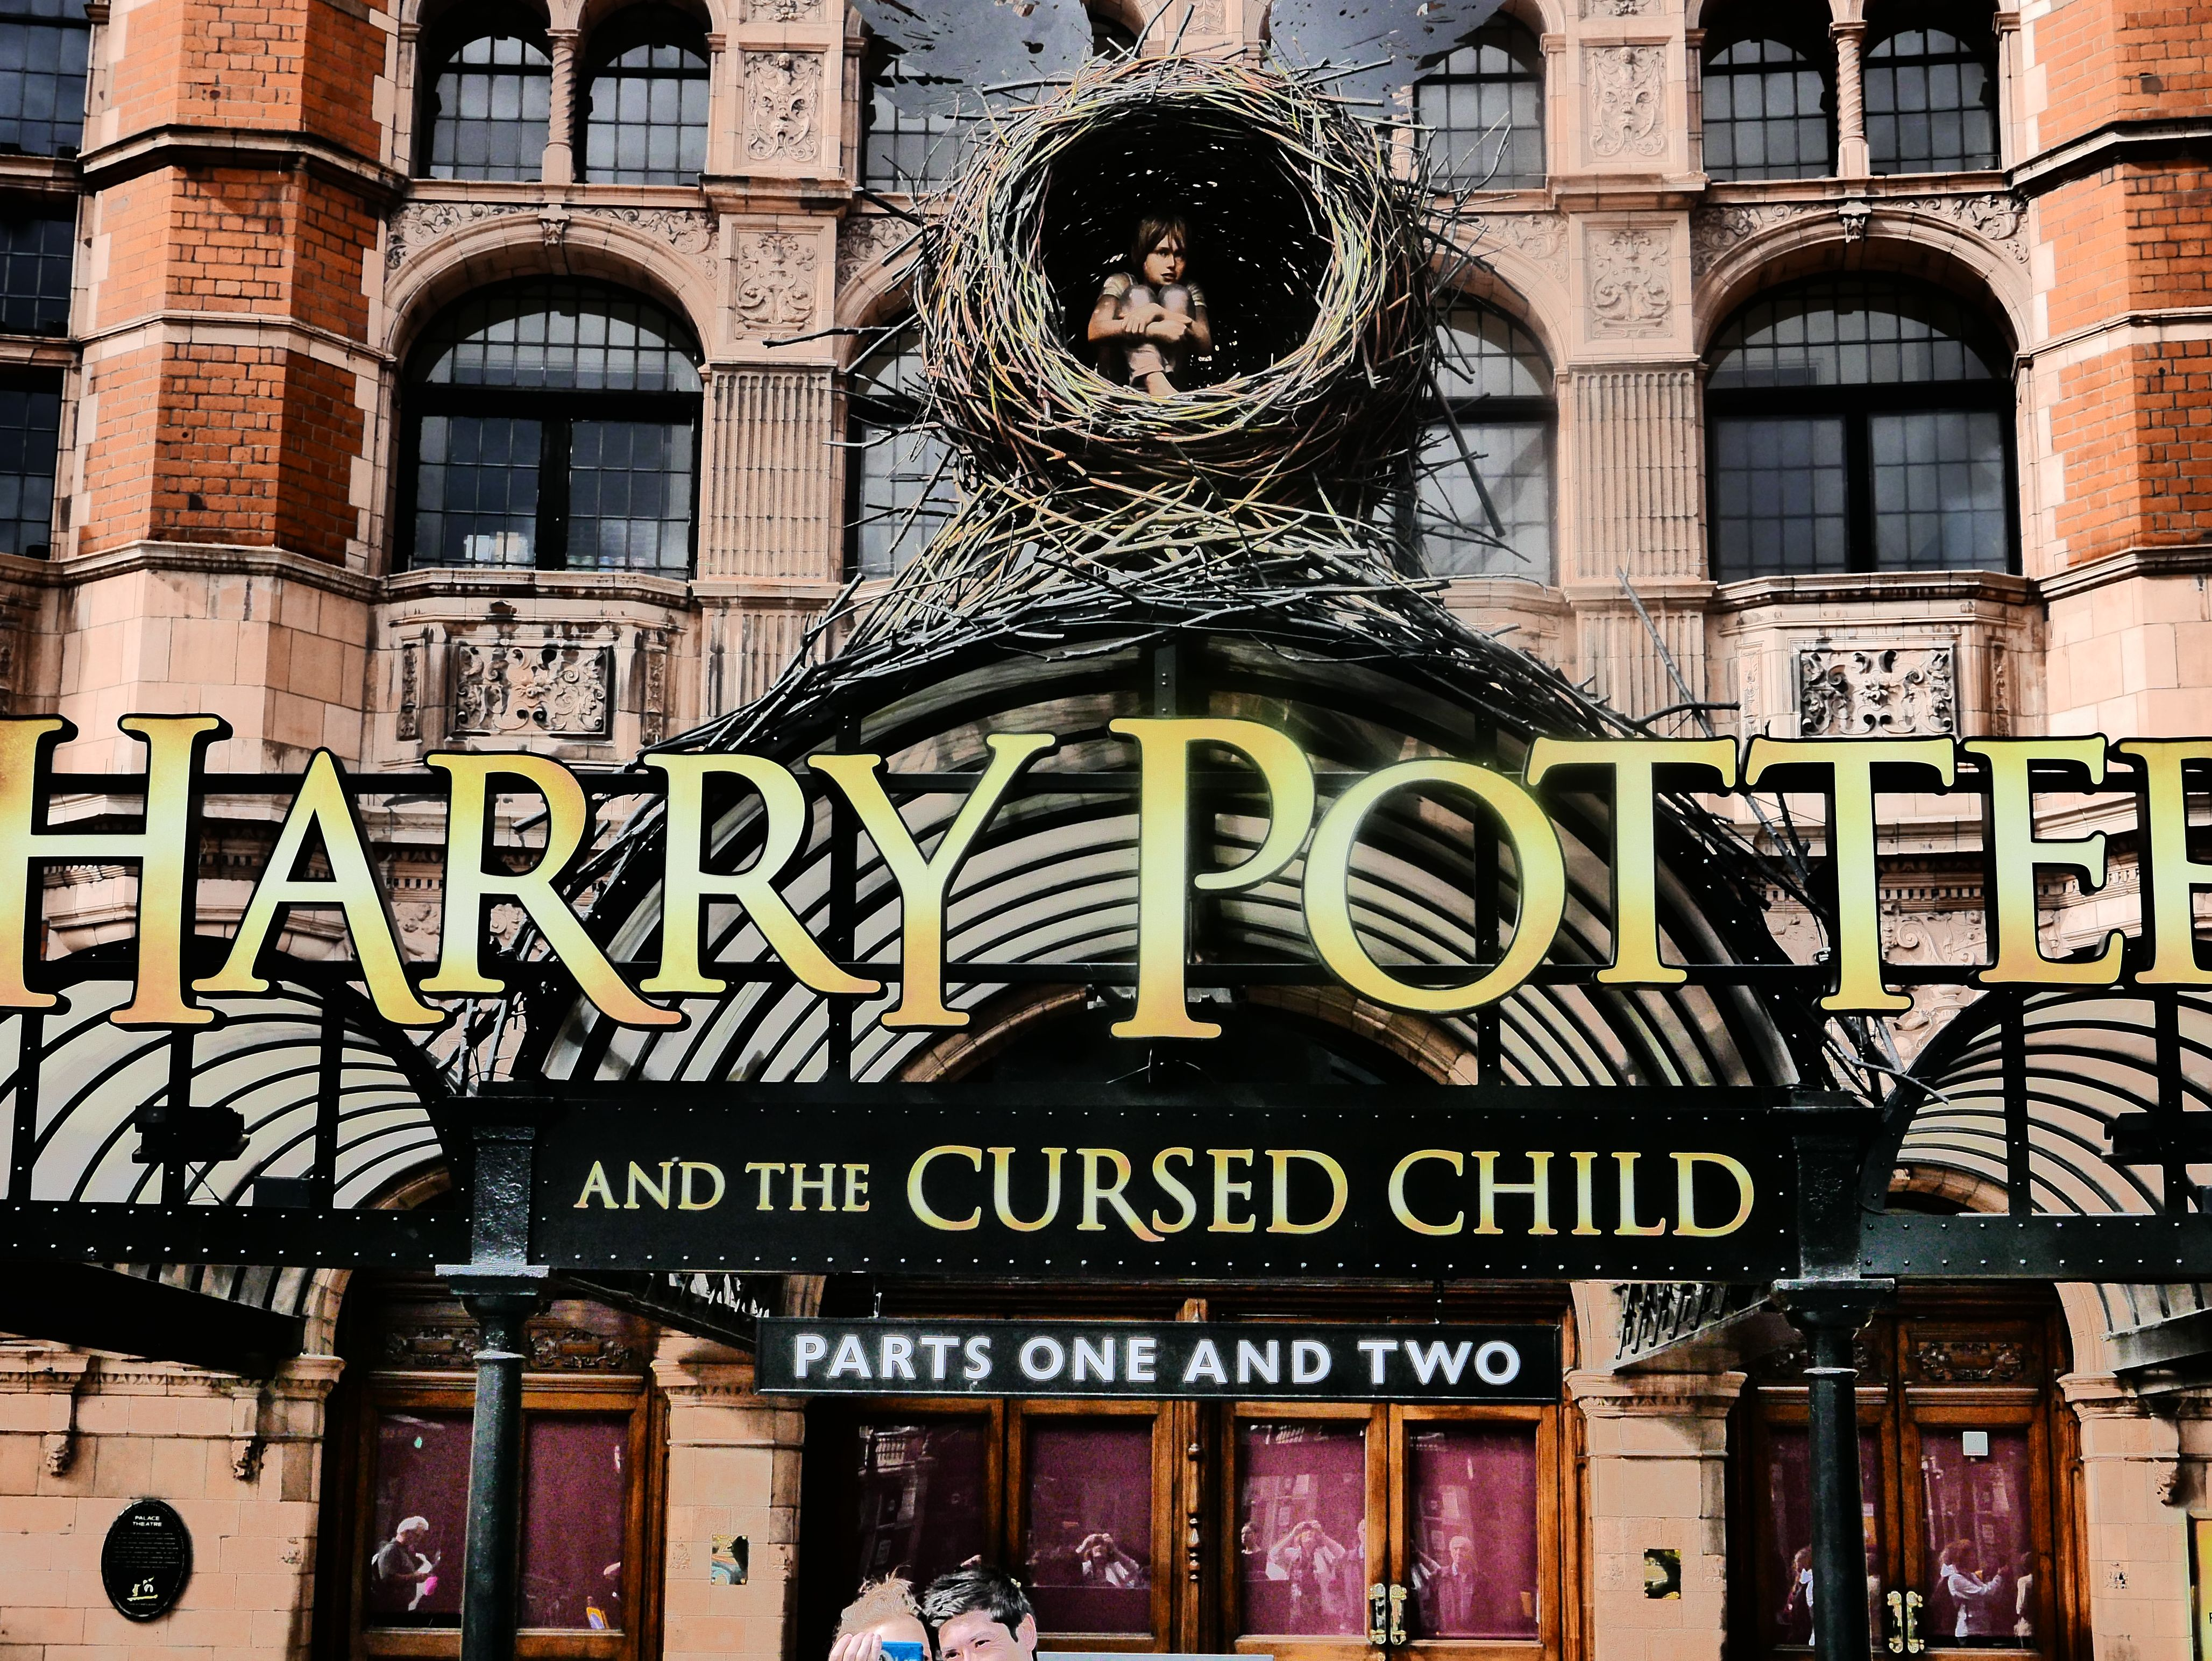 The Palace Theatre London Home Of Hp And The Cursed Child Cursed Child City Guide Day Off Work